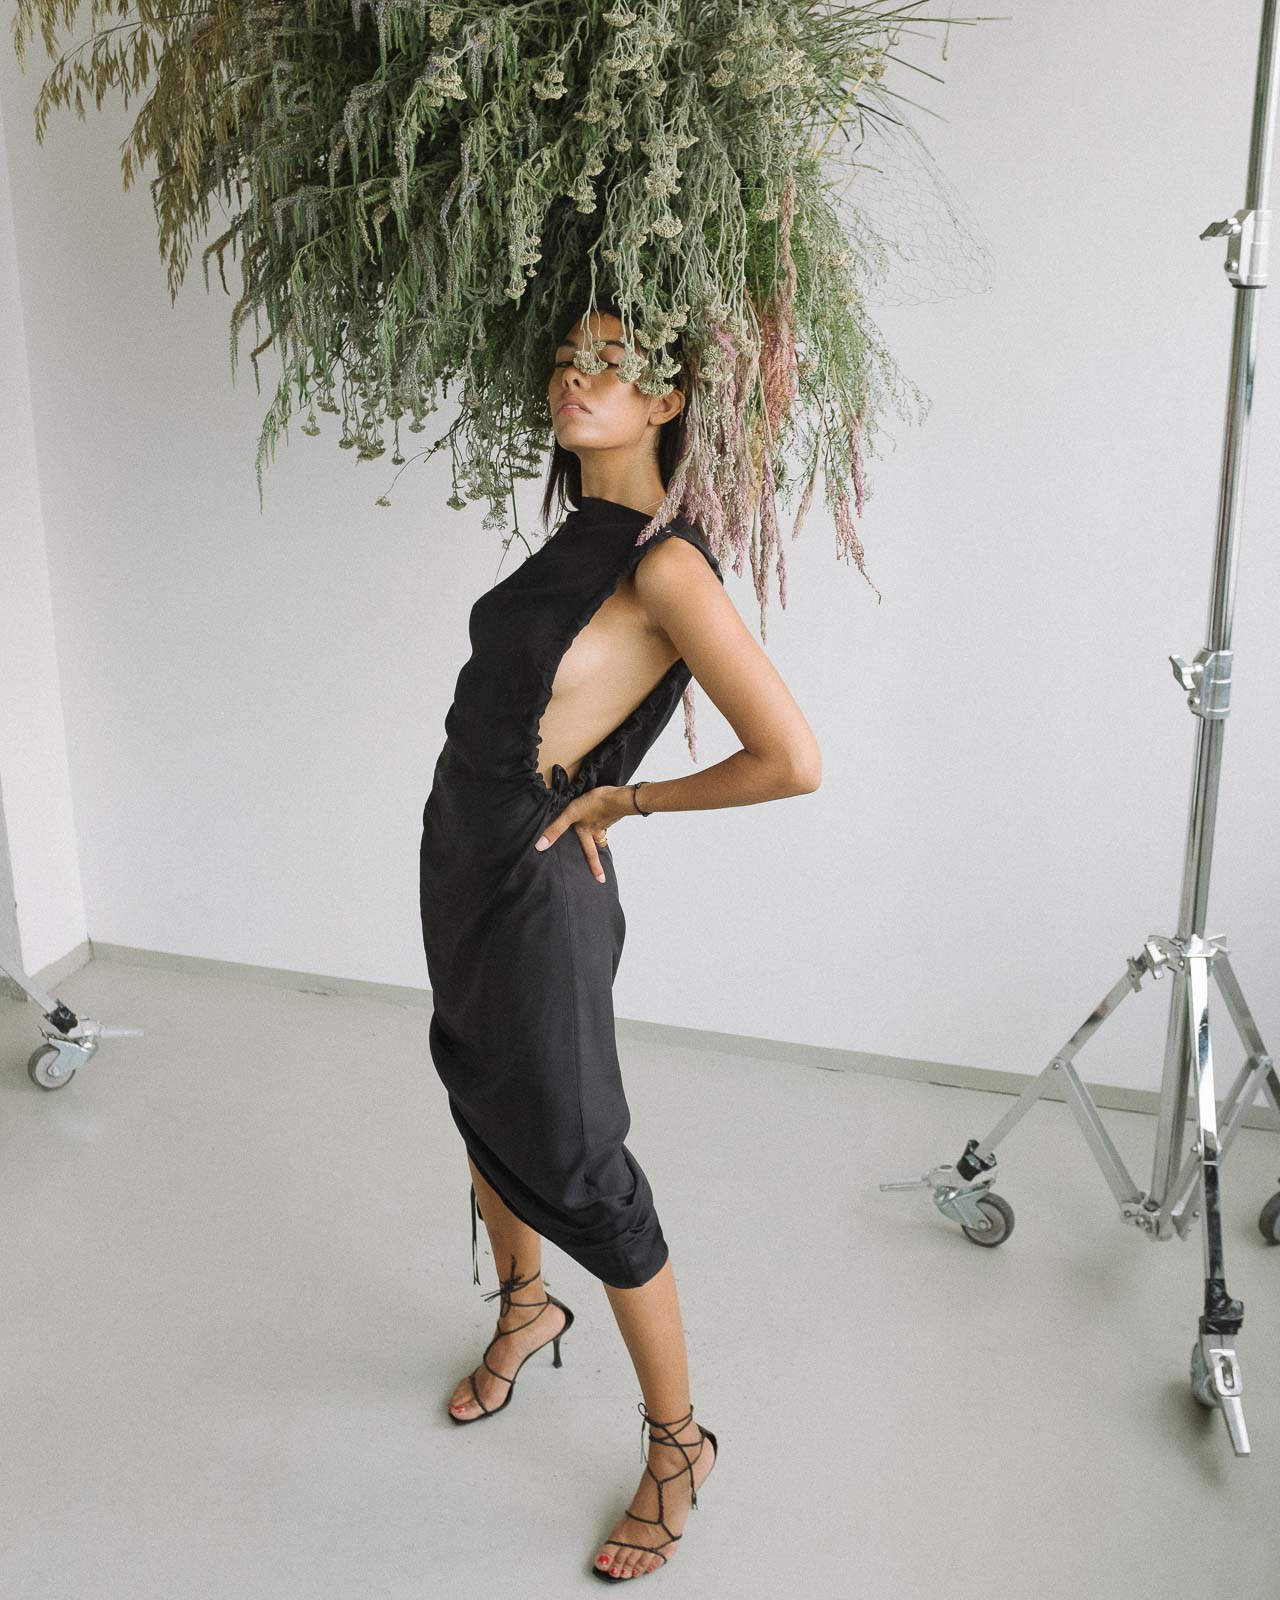 storm wears gucci vintage sandals with by malene birger black dress shot by marius knieling at studio230 flowers by studiolilo